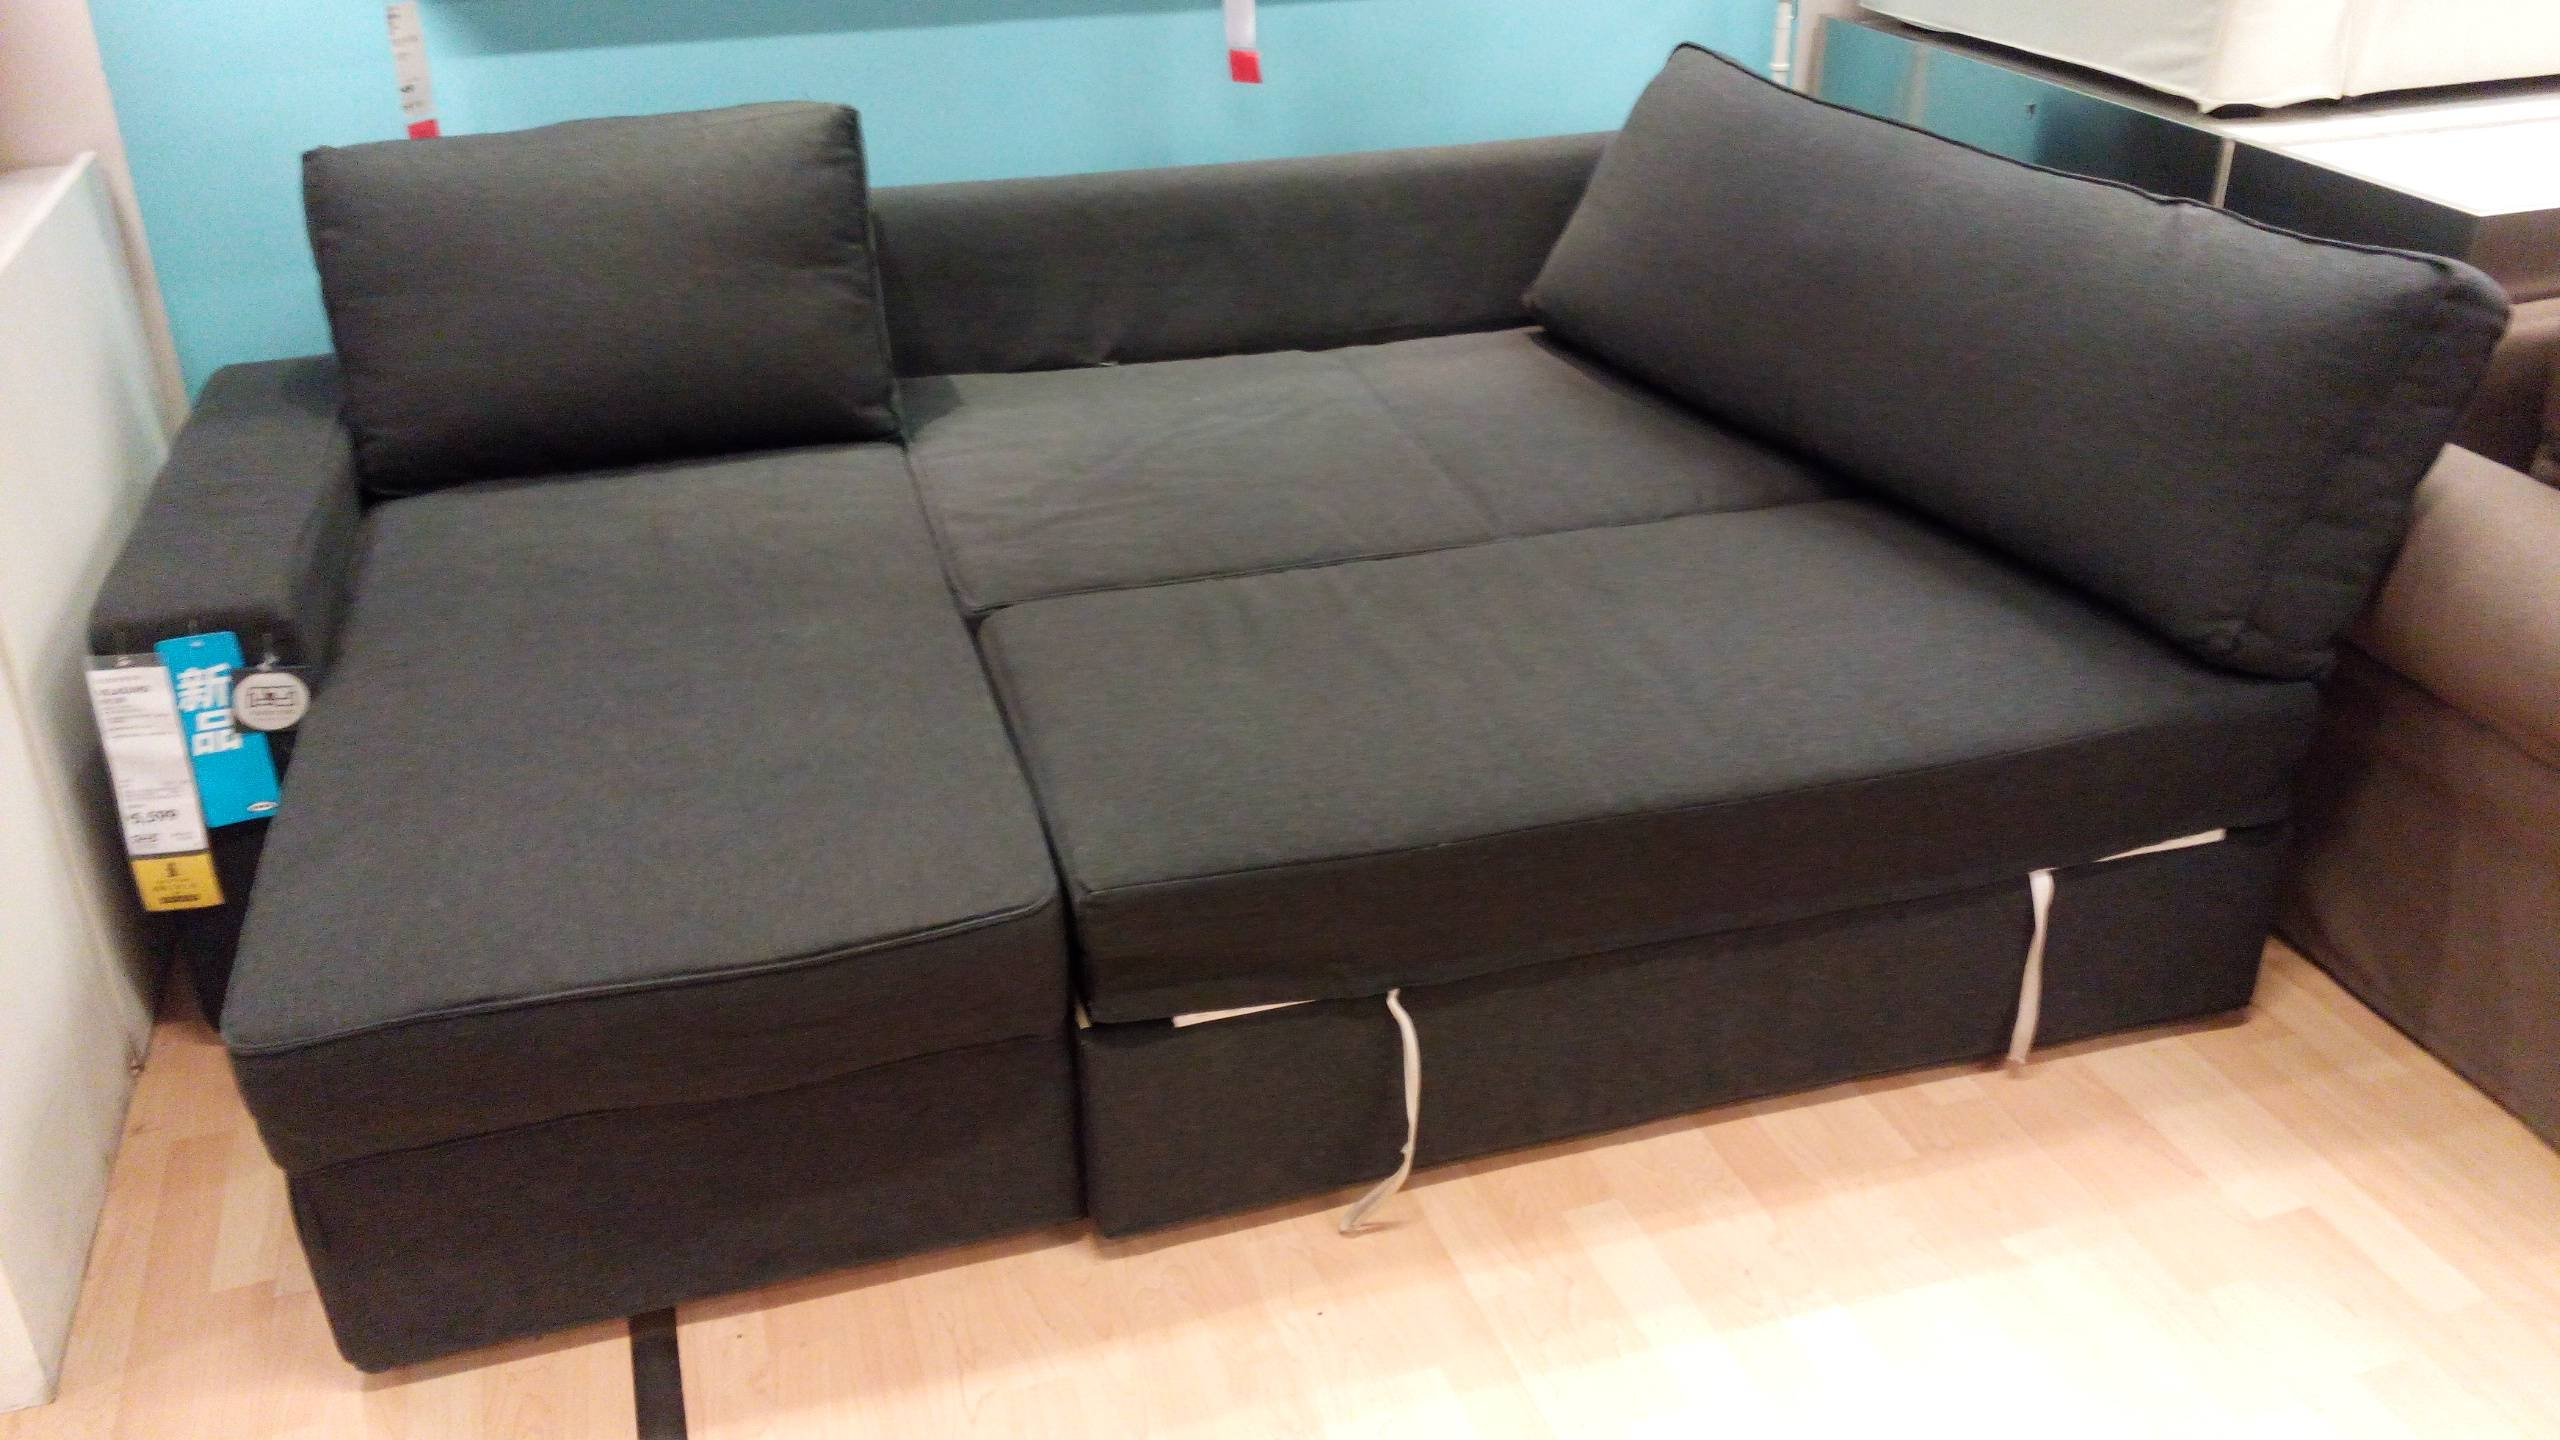 ☆▻ Sofa : 15 Leather Sectional Sleeper Sofa With Chaise Sleeper Intended For Sectional Sleeper Sofas With Chaise (View 30 of 30)